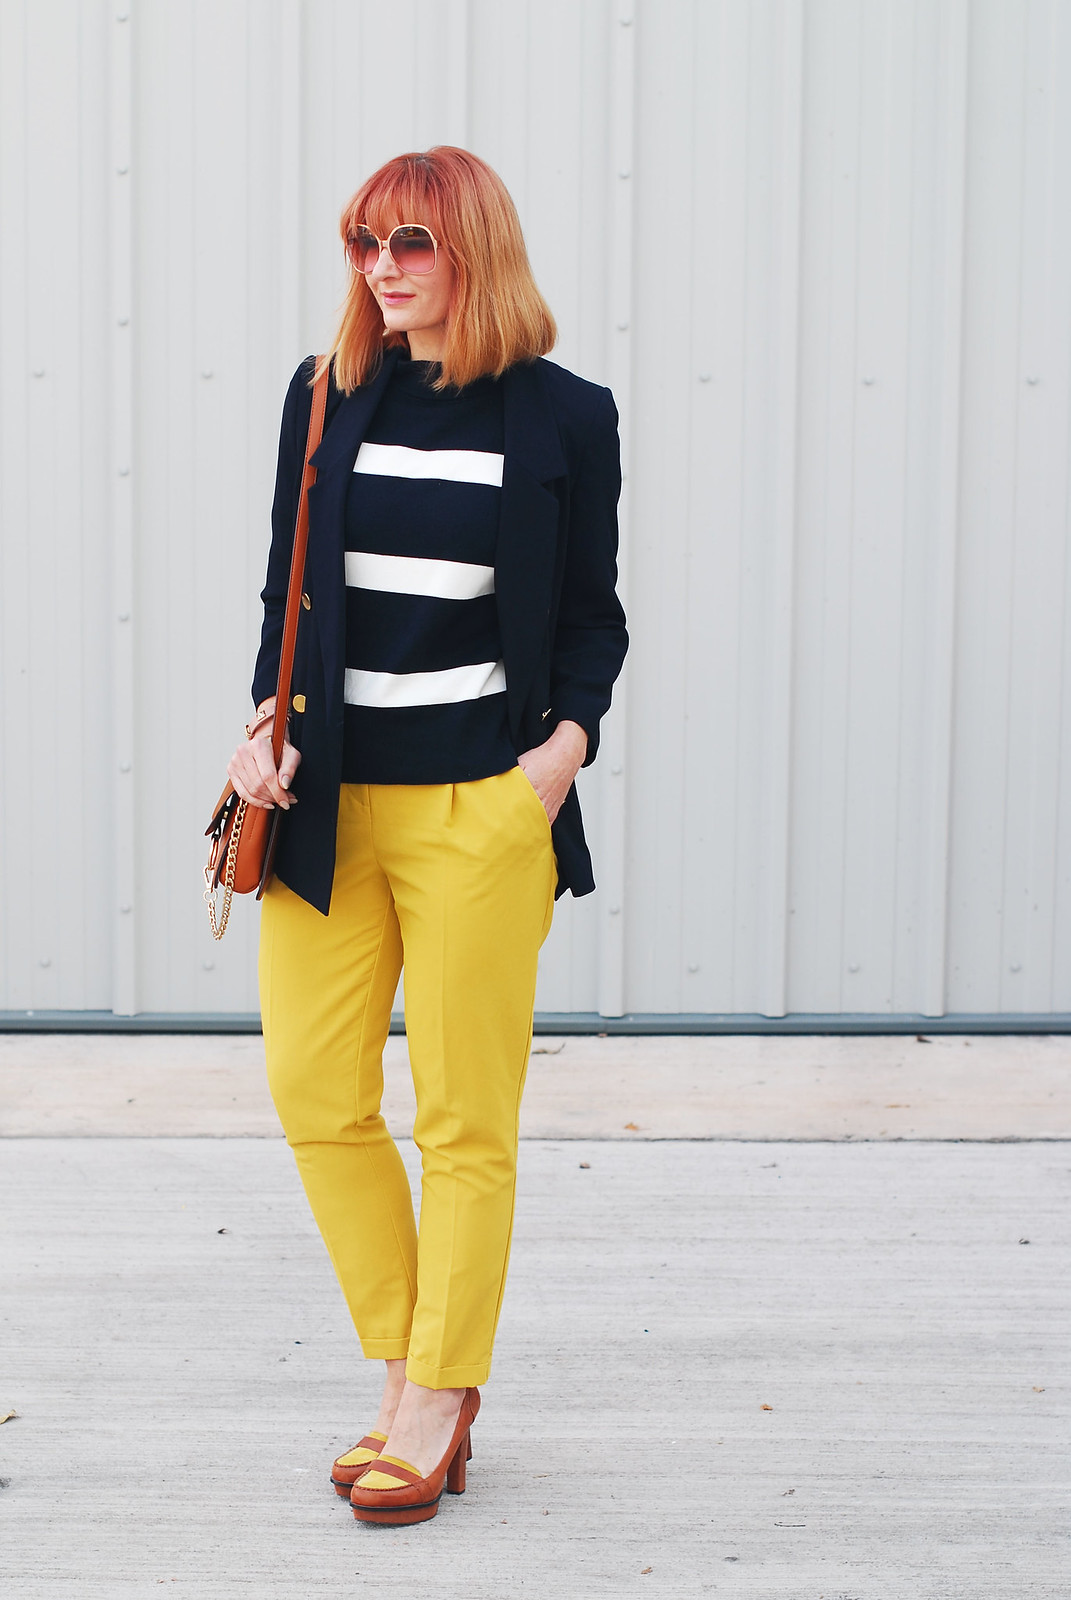 How to wear preppy style in autumn / fall: Navy and white striped sweater, mustard yellow pants, navy blazer, tan accessories | Not Dressed As Lamb, over 40 style